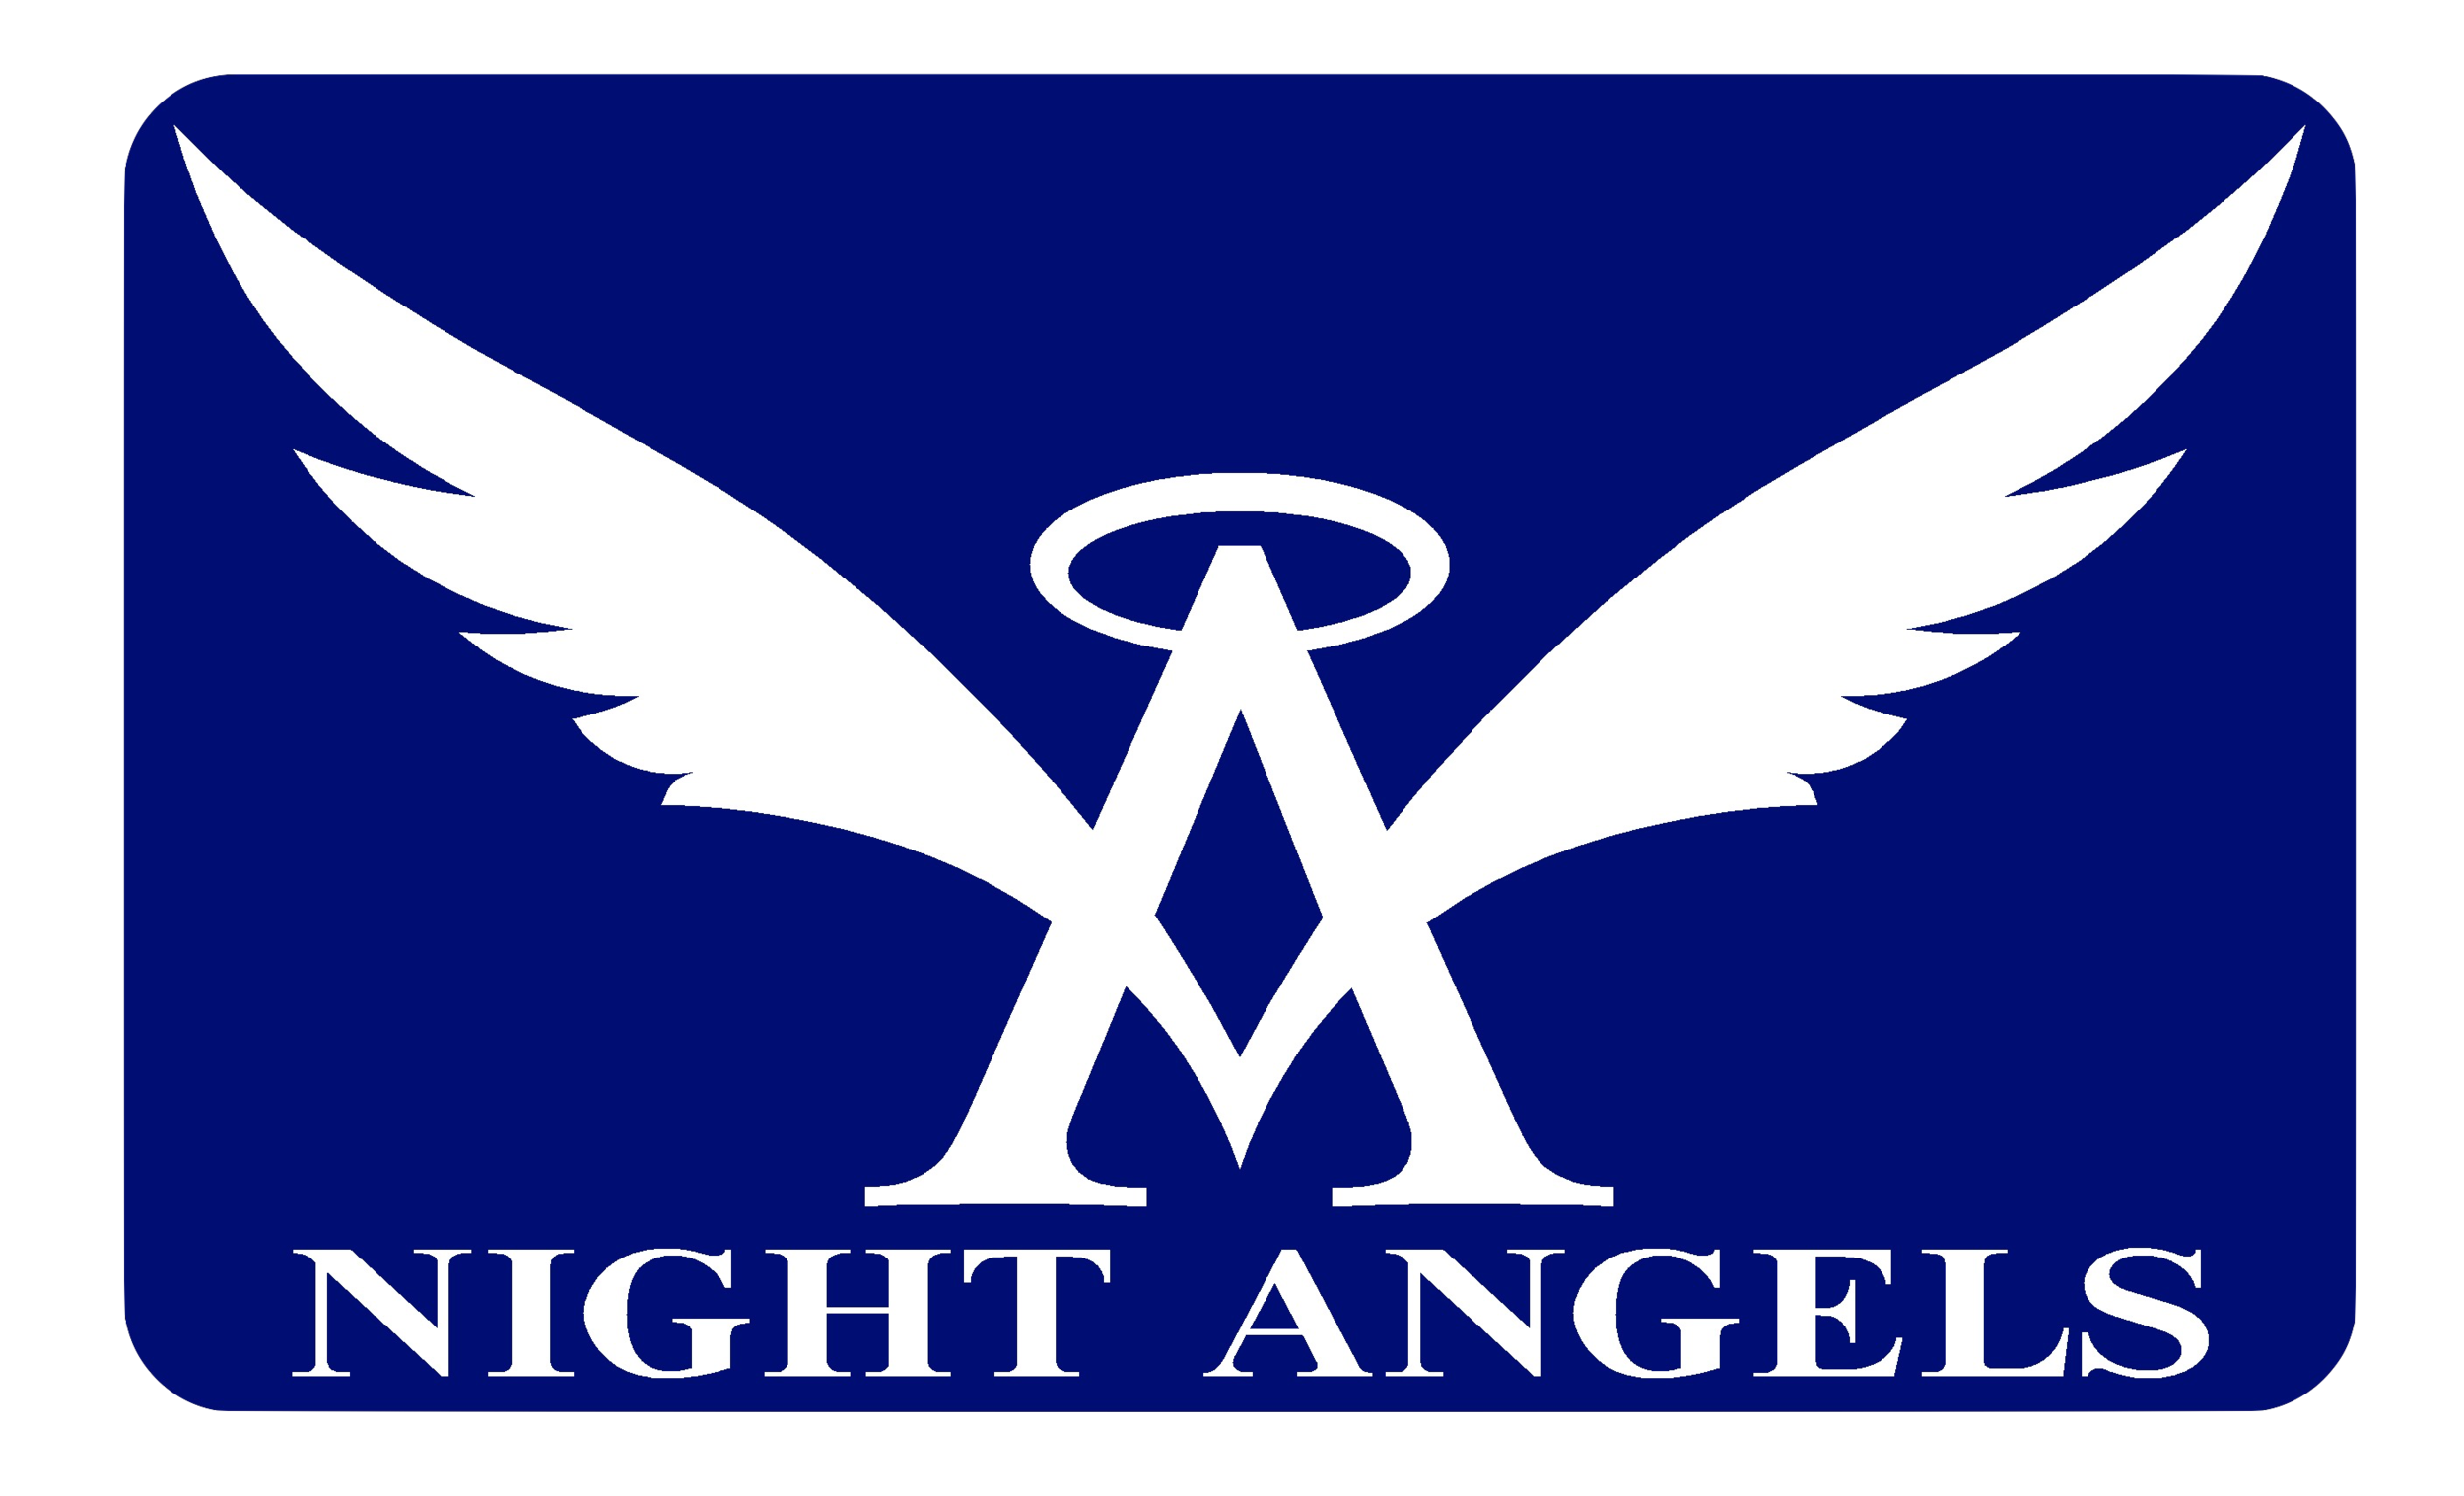 Night Angels - Contact Us